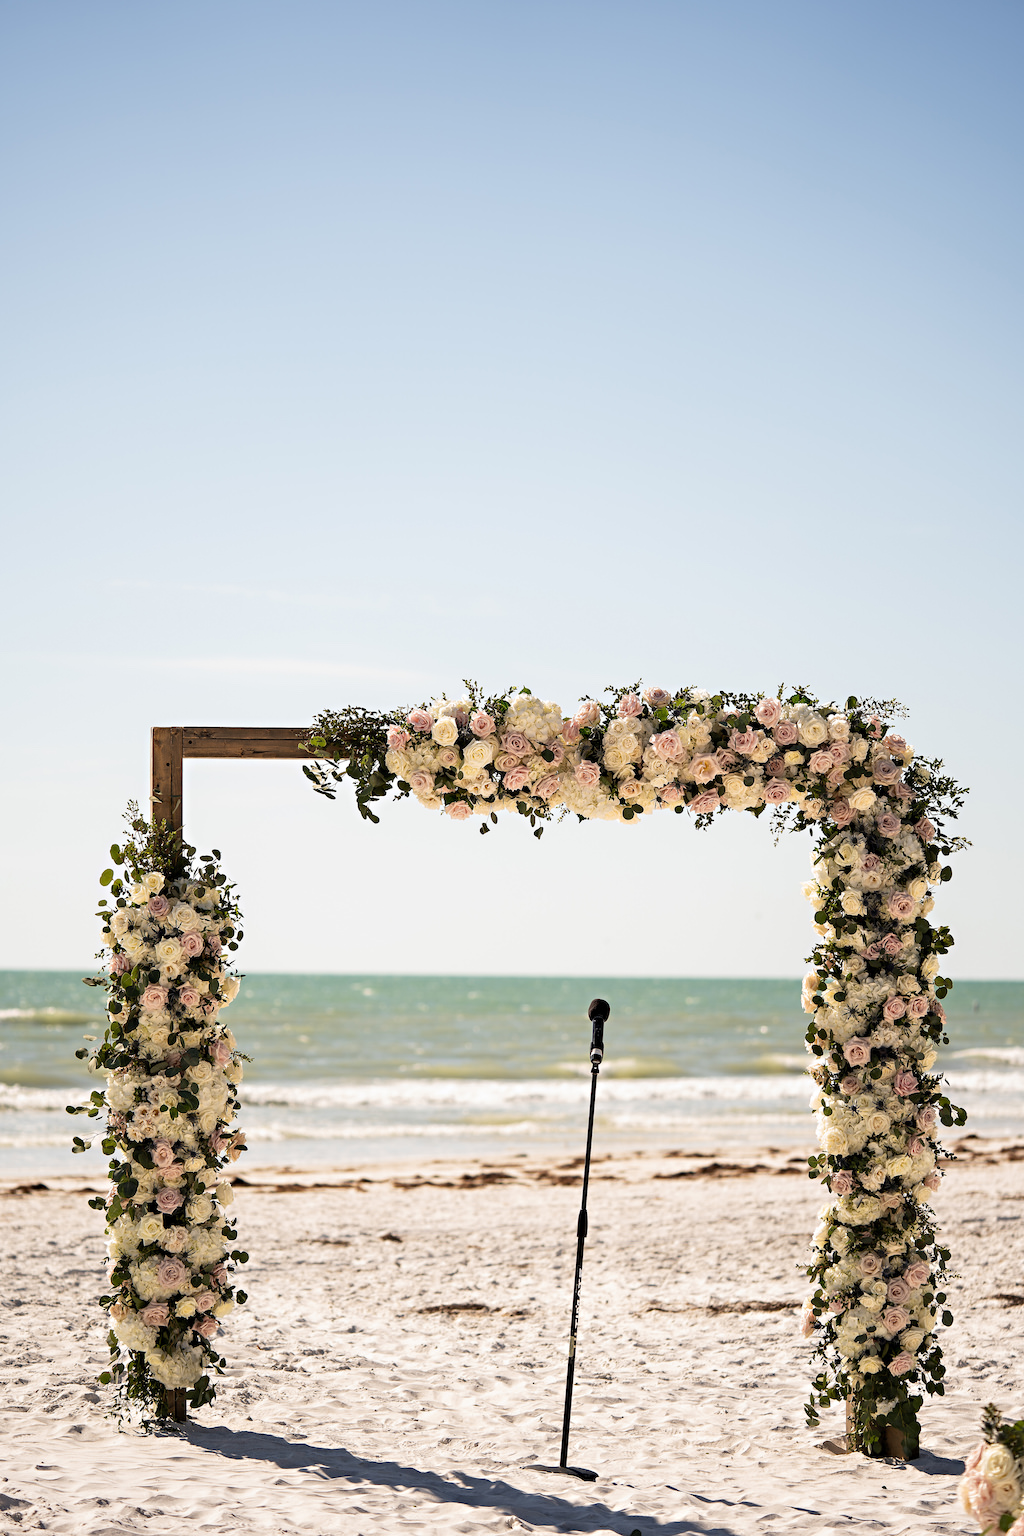 Romantic Garden Inspired Floral Square Wedding Arch at Oceanfront Ceremony on White Sand, White and Blush Pink Florals with Greenery   Tampa Bay Florist Bruce Wayne Florals   Florida Planner Parties A La Carte   St. Pete Beach Wedding Venue The Historic Don Cesar Hotel